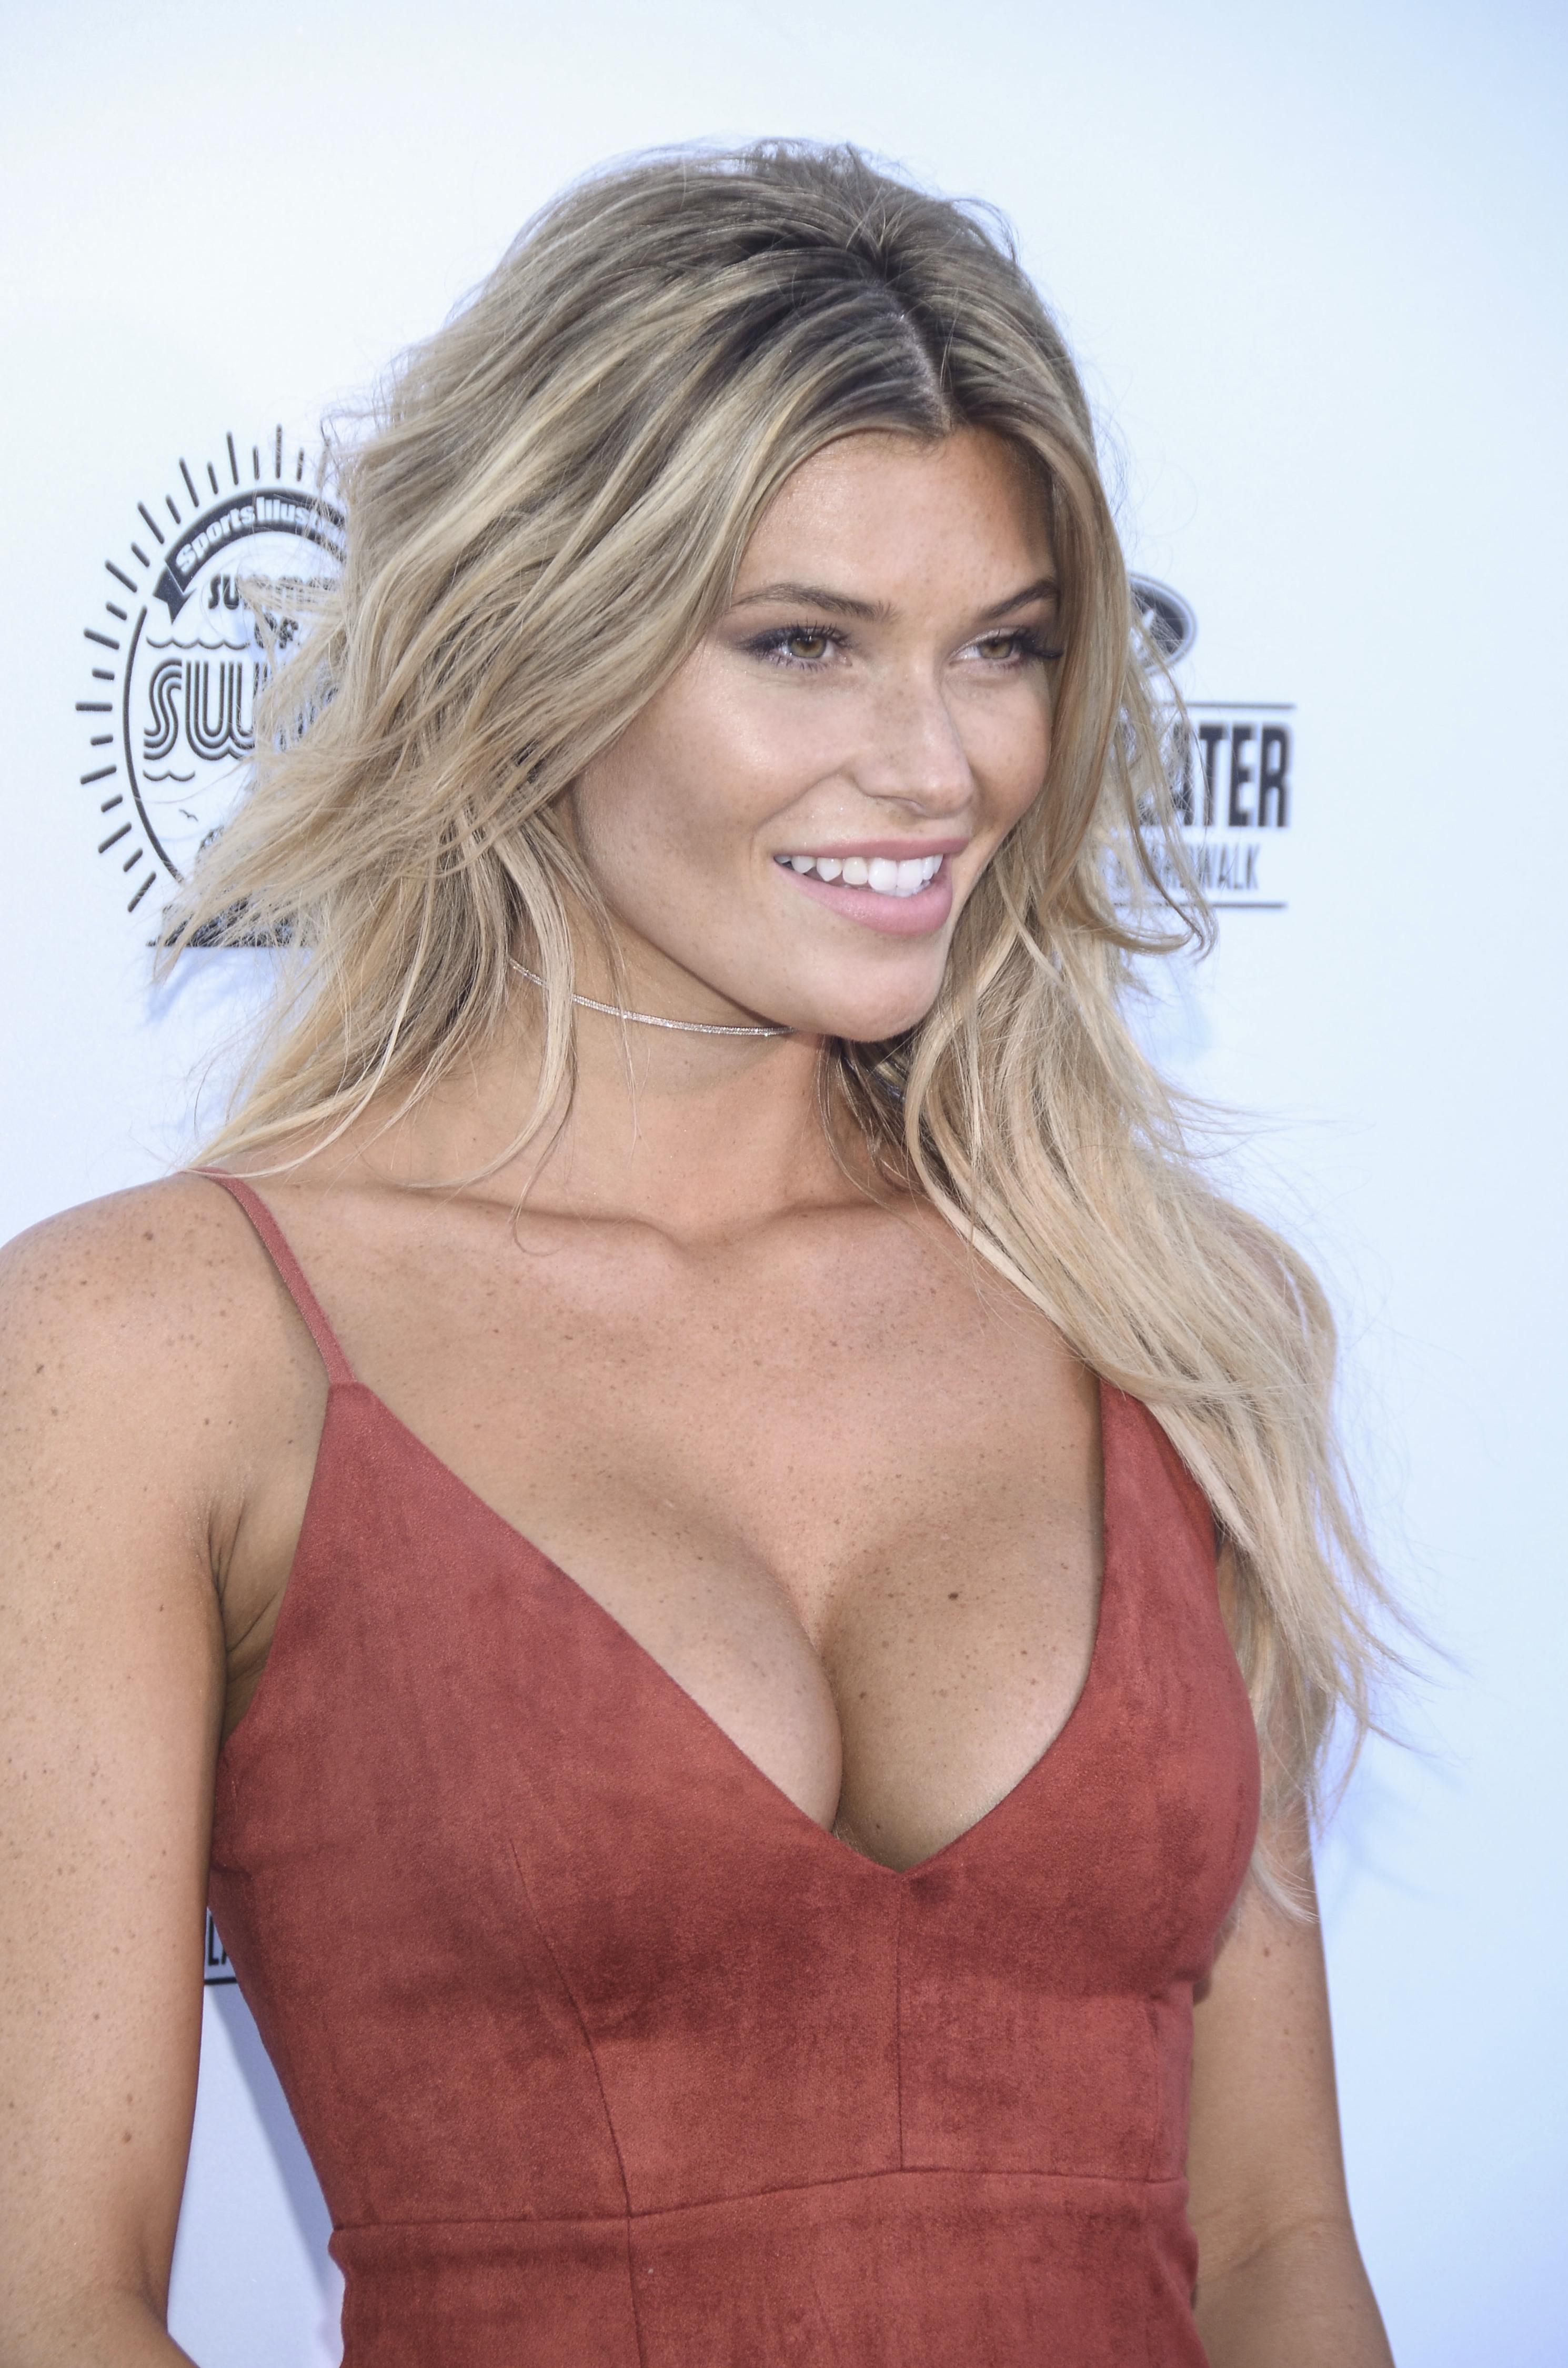 Foto Samantha Hoopes nudes (82 foto and video), Ass, Leaked, Boobs, braless 2019